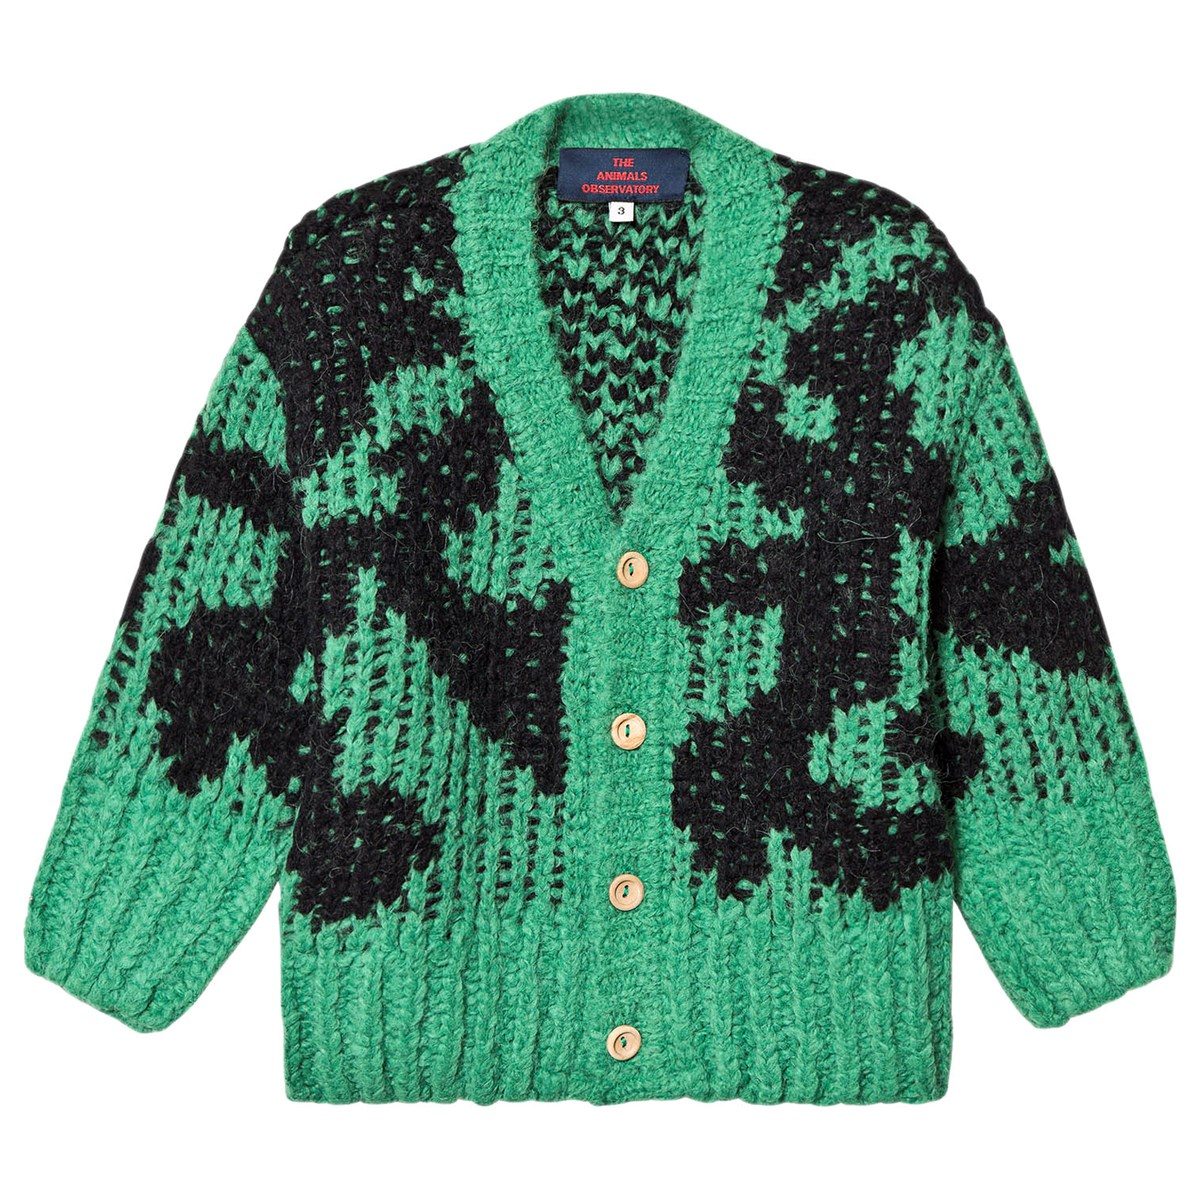 The Animals Observatory Arty Racoon Cardigan Green